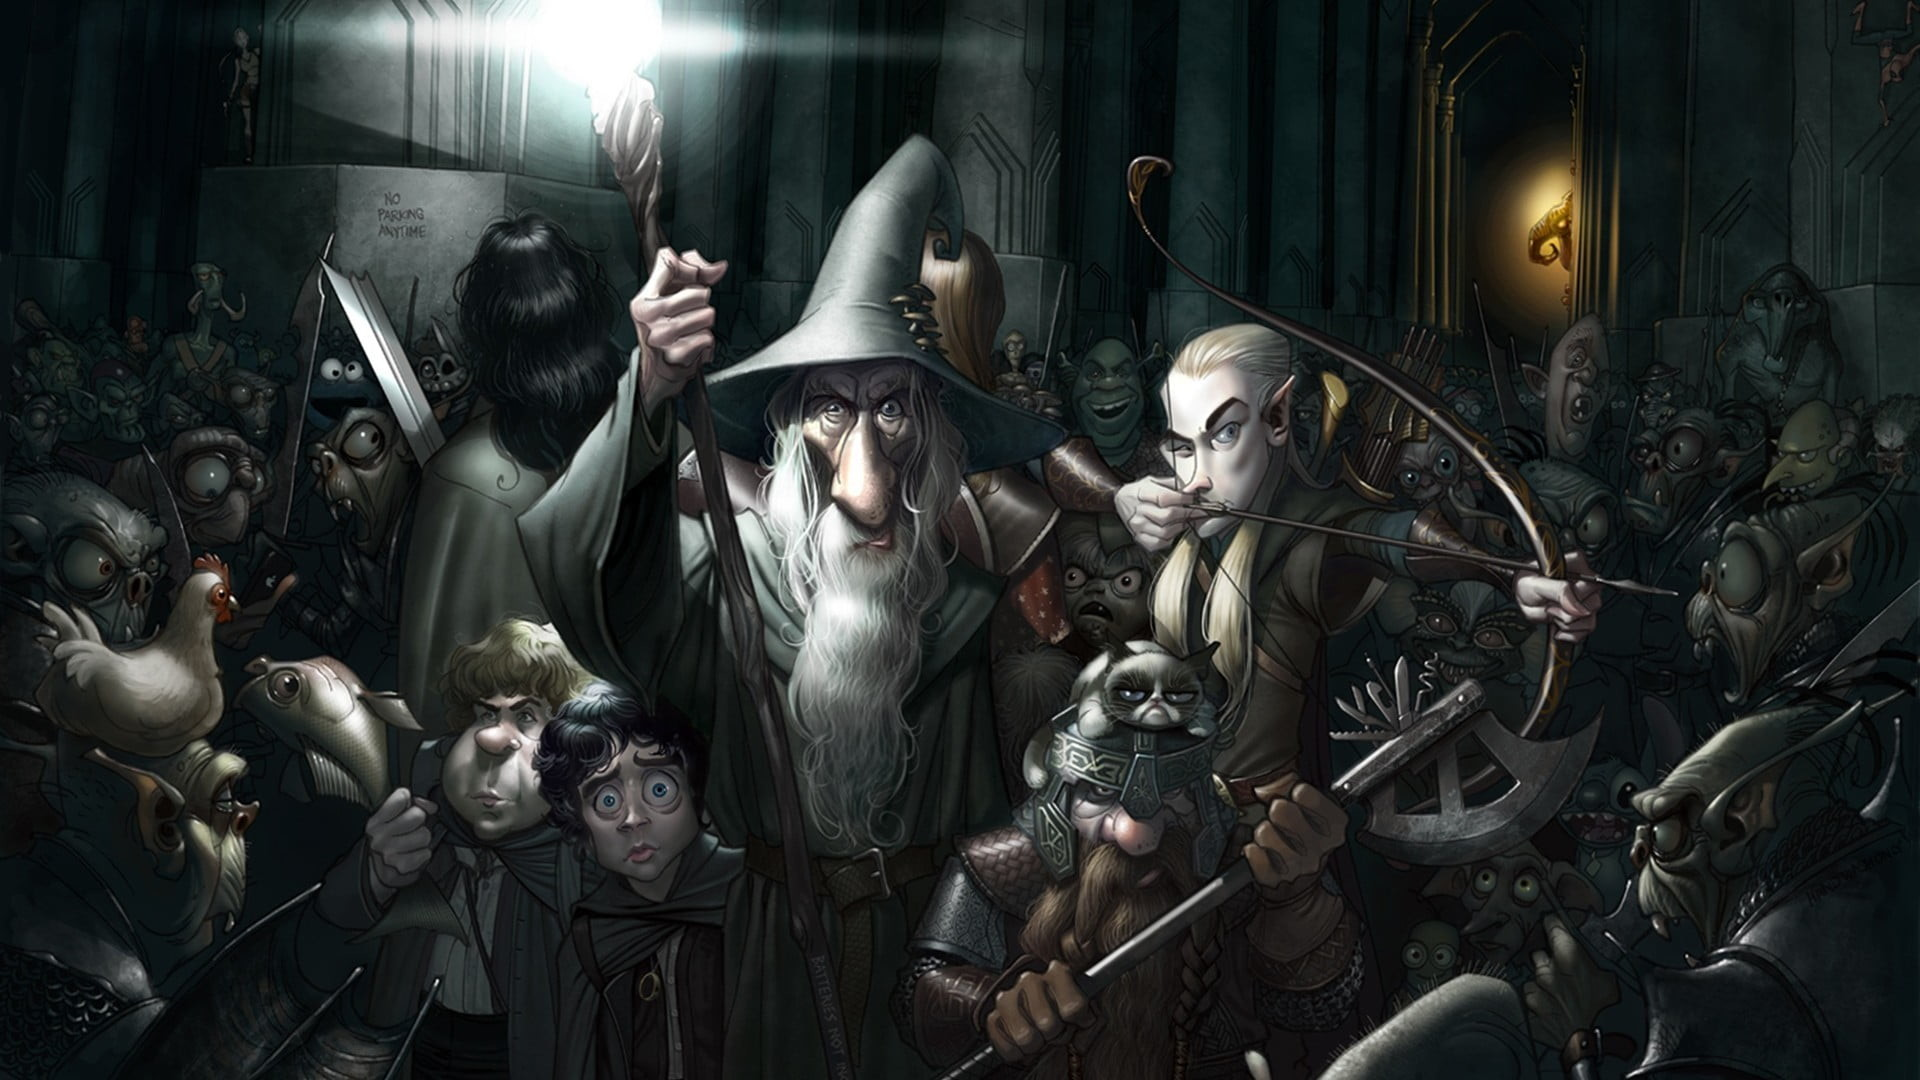 Res: 1920x1080, The Lord of the Rings, Gandalf, Shrek, Gremlins HD wallpaper